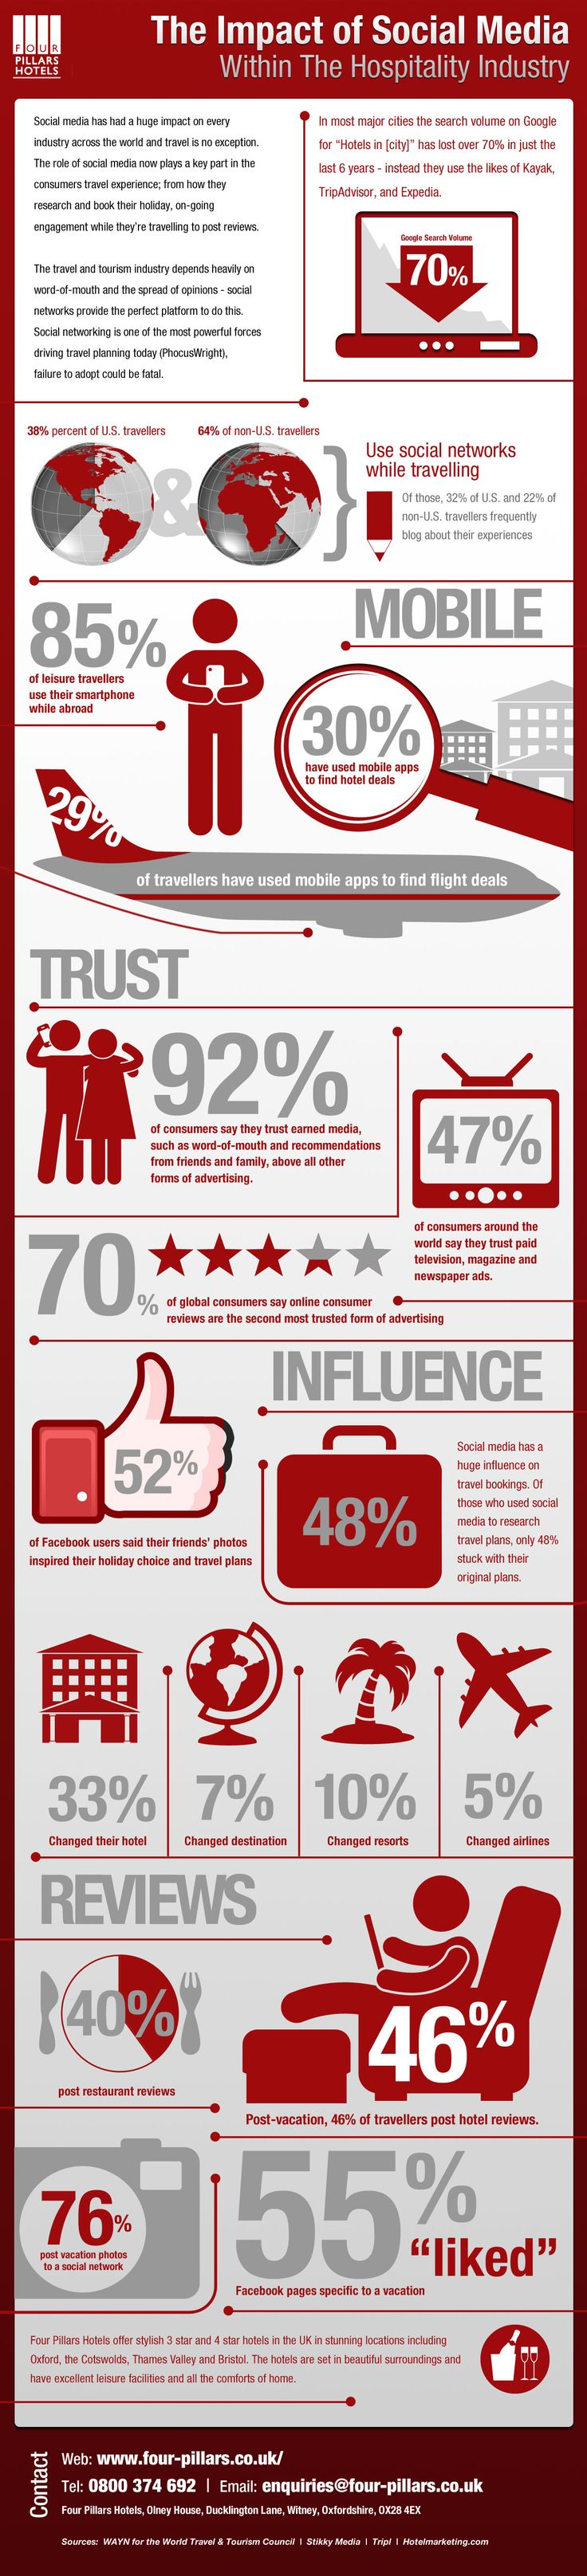 The Impact Of Social Media On Travel And Tourism [INFOGRAPHIC] #social #media #infograhic